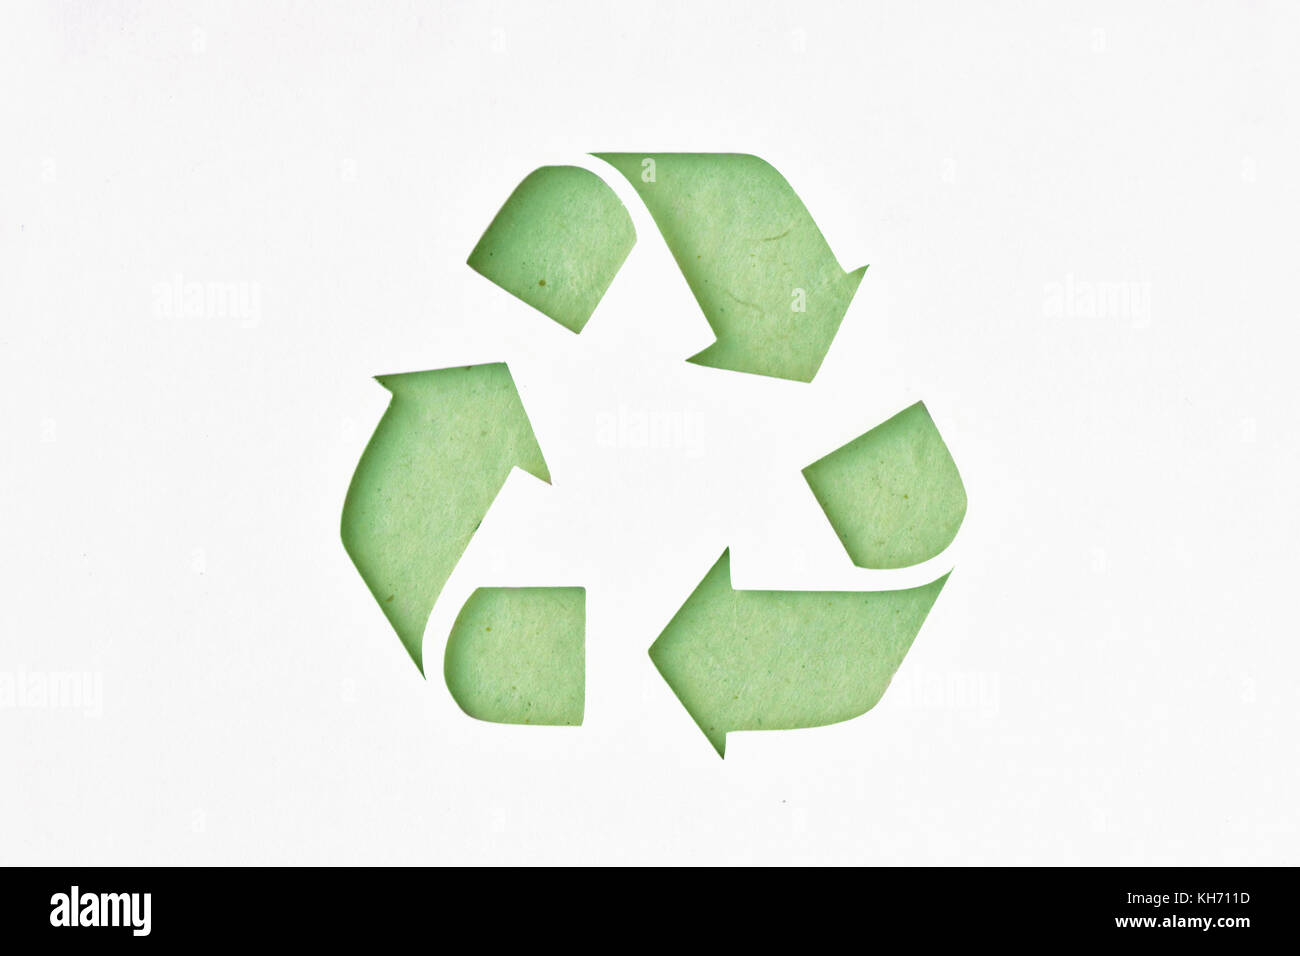 Recyclig symbol on recycled paper - Stock Image